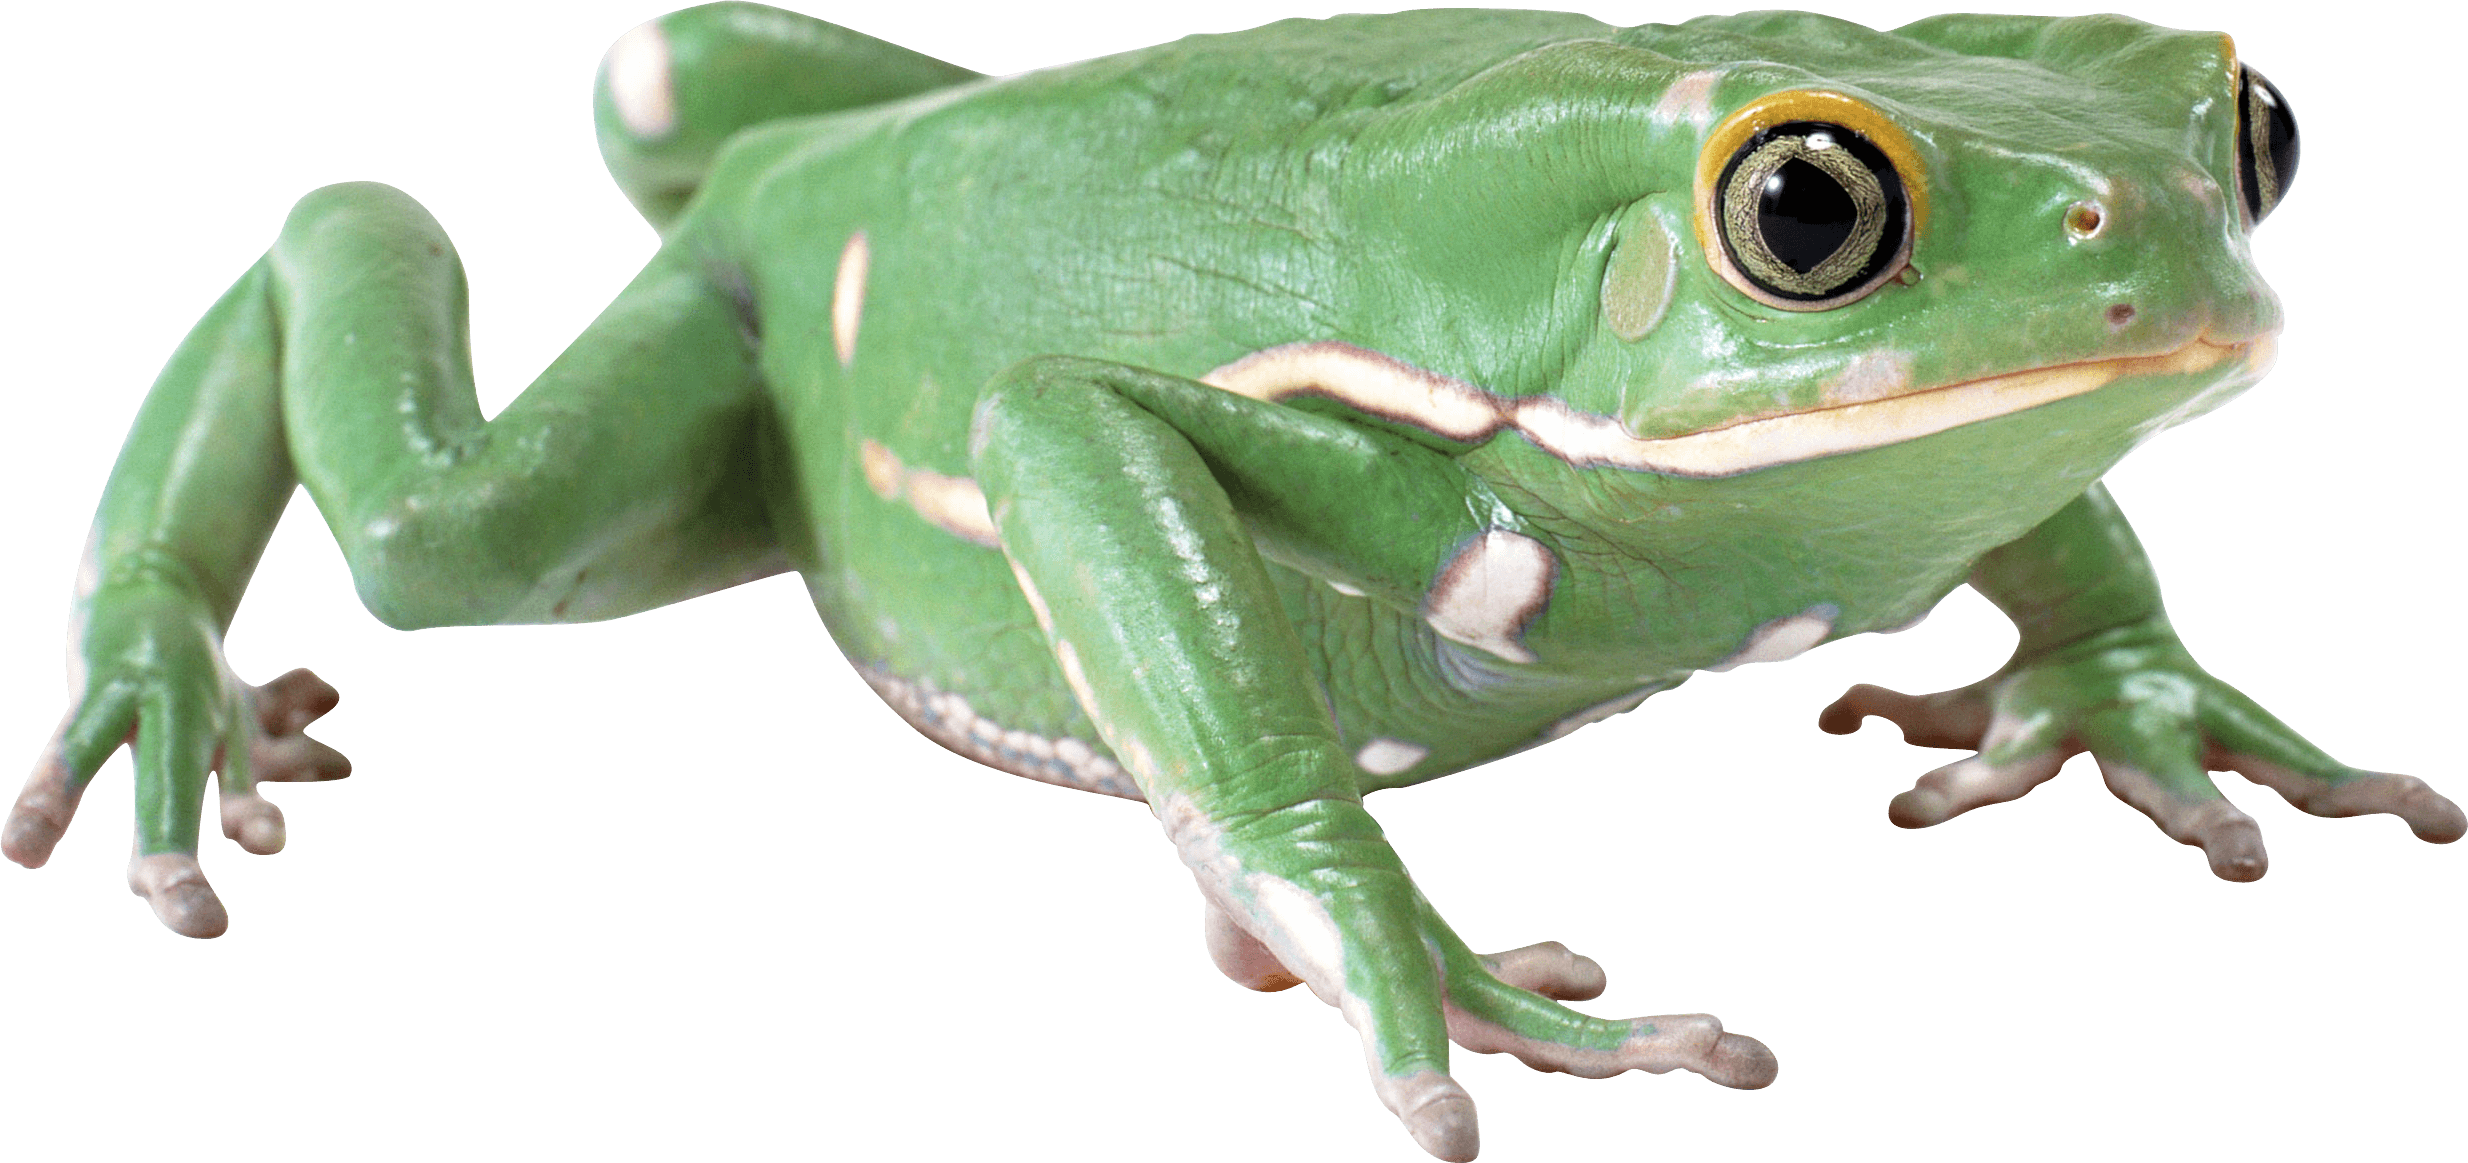 Wednesday frog png. Green image purepng free